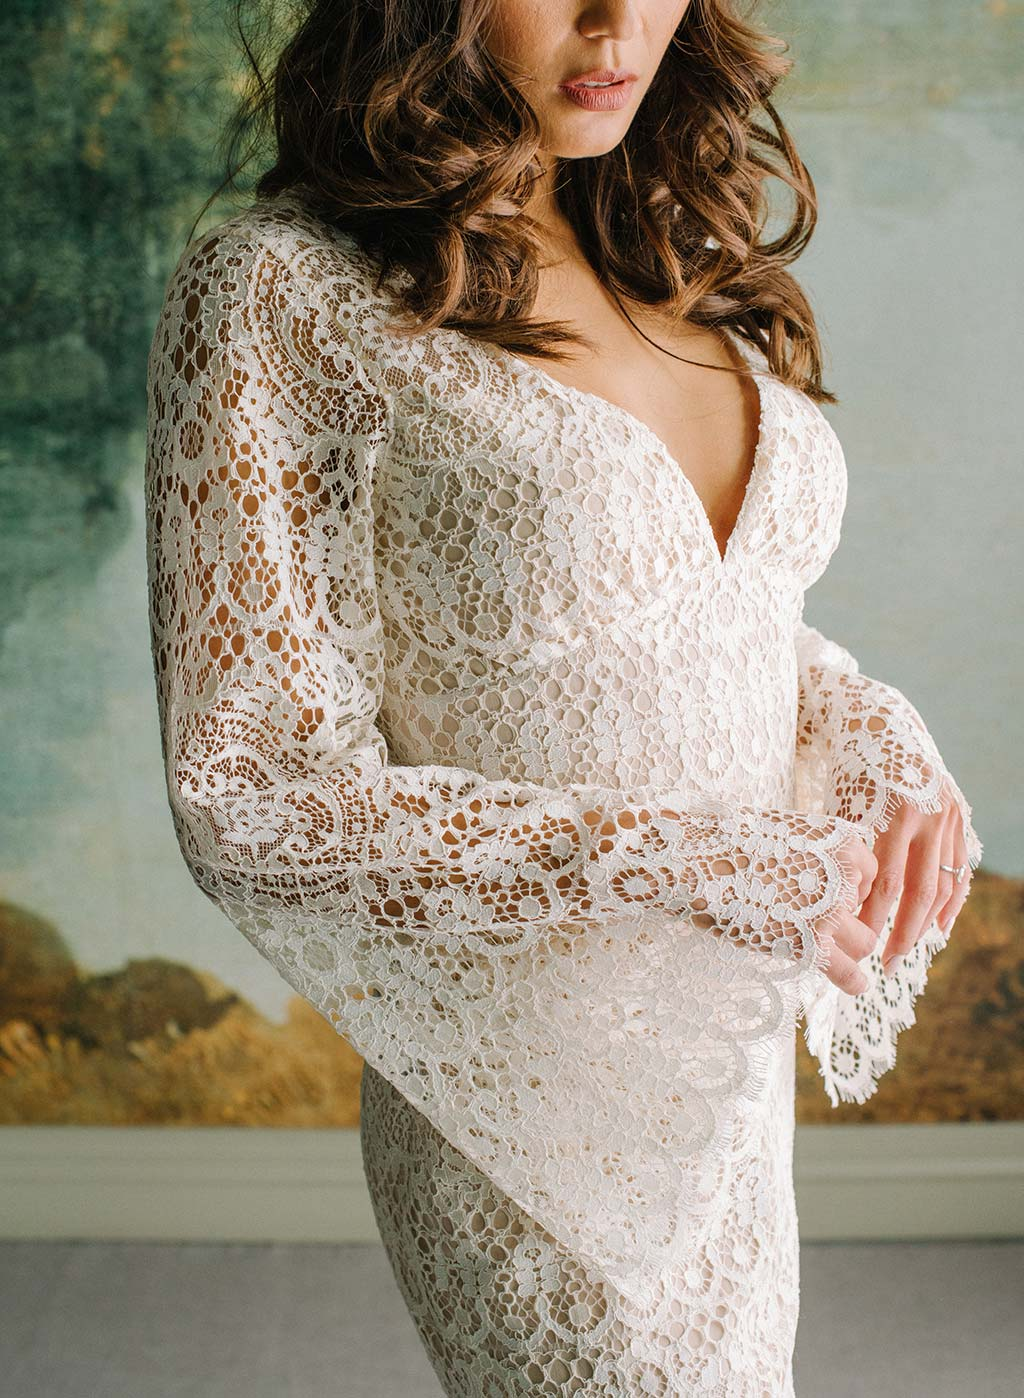 Indie Lace Ready to Wed Dress Sleeve